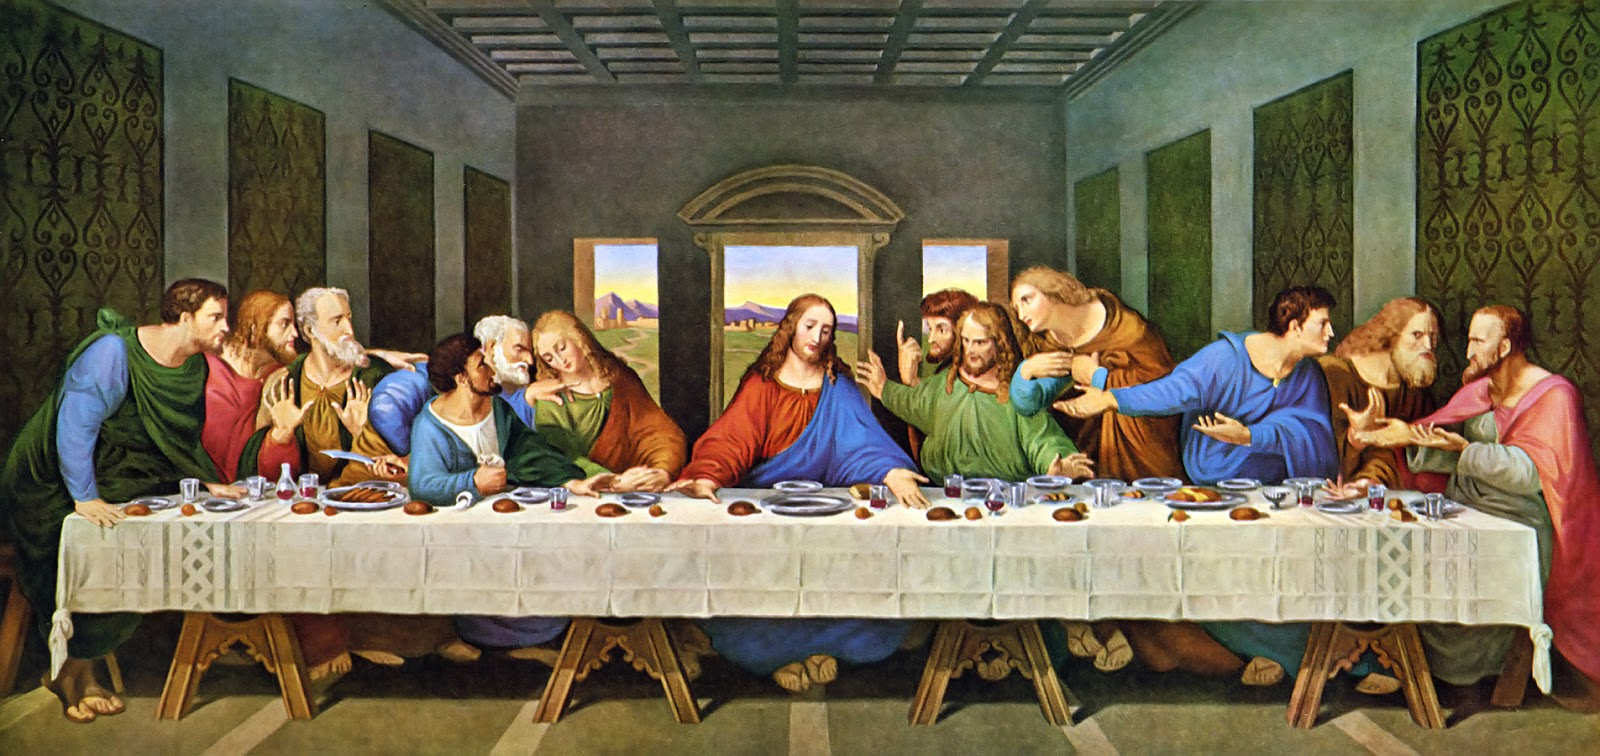 Explore and Express: Godly Play: Jesus and the 12 Da Vinci Last Supper Restored